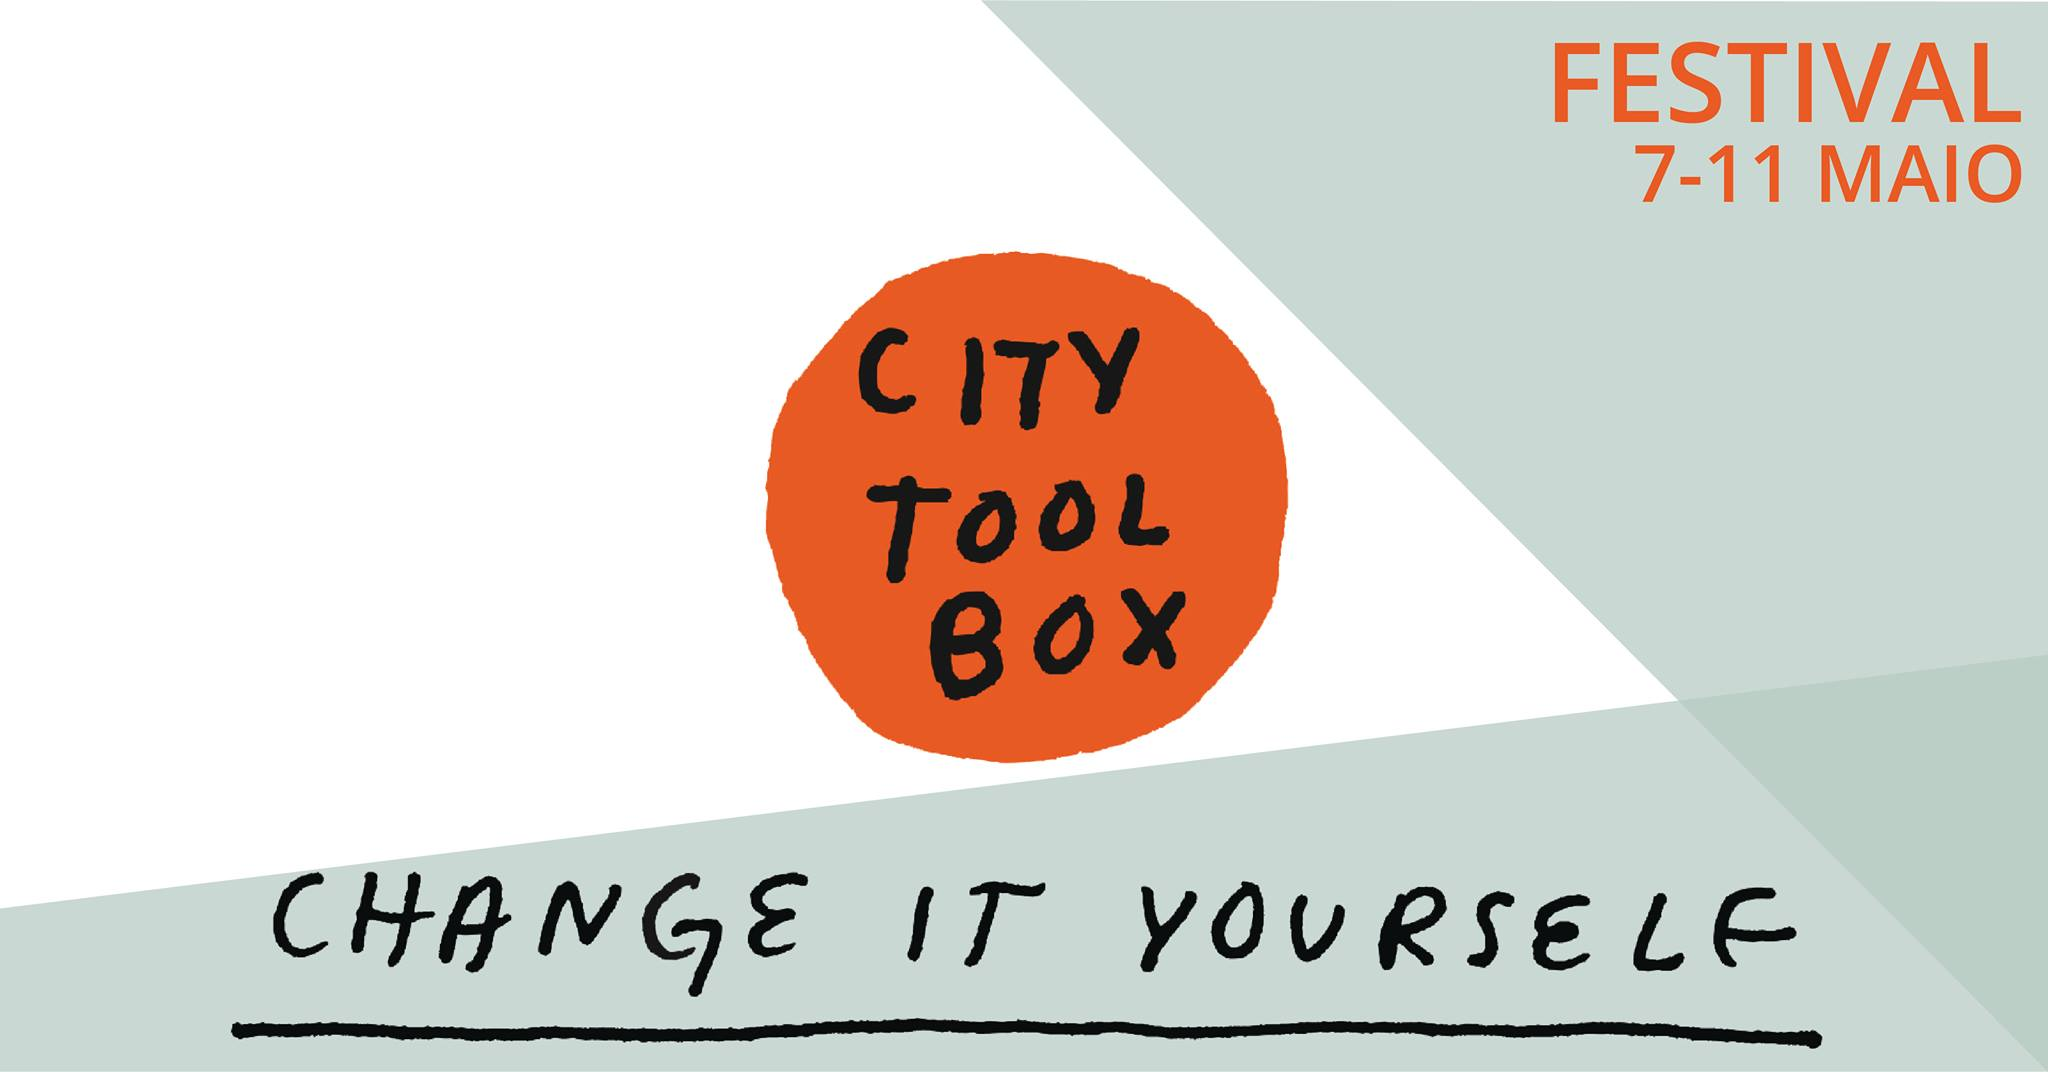 CityToolBox Festival. Building together the city of Aveiro.